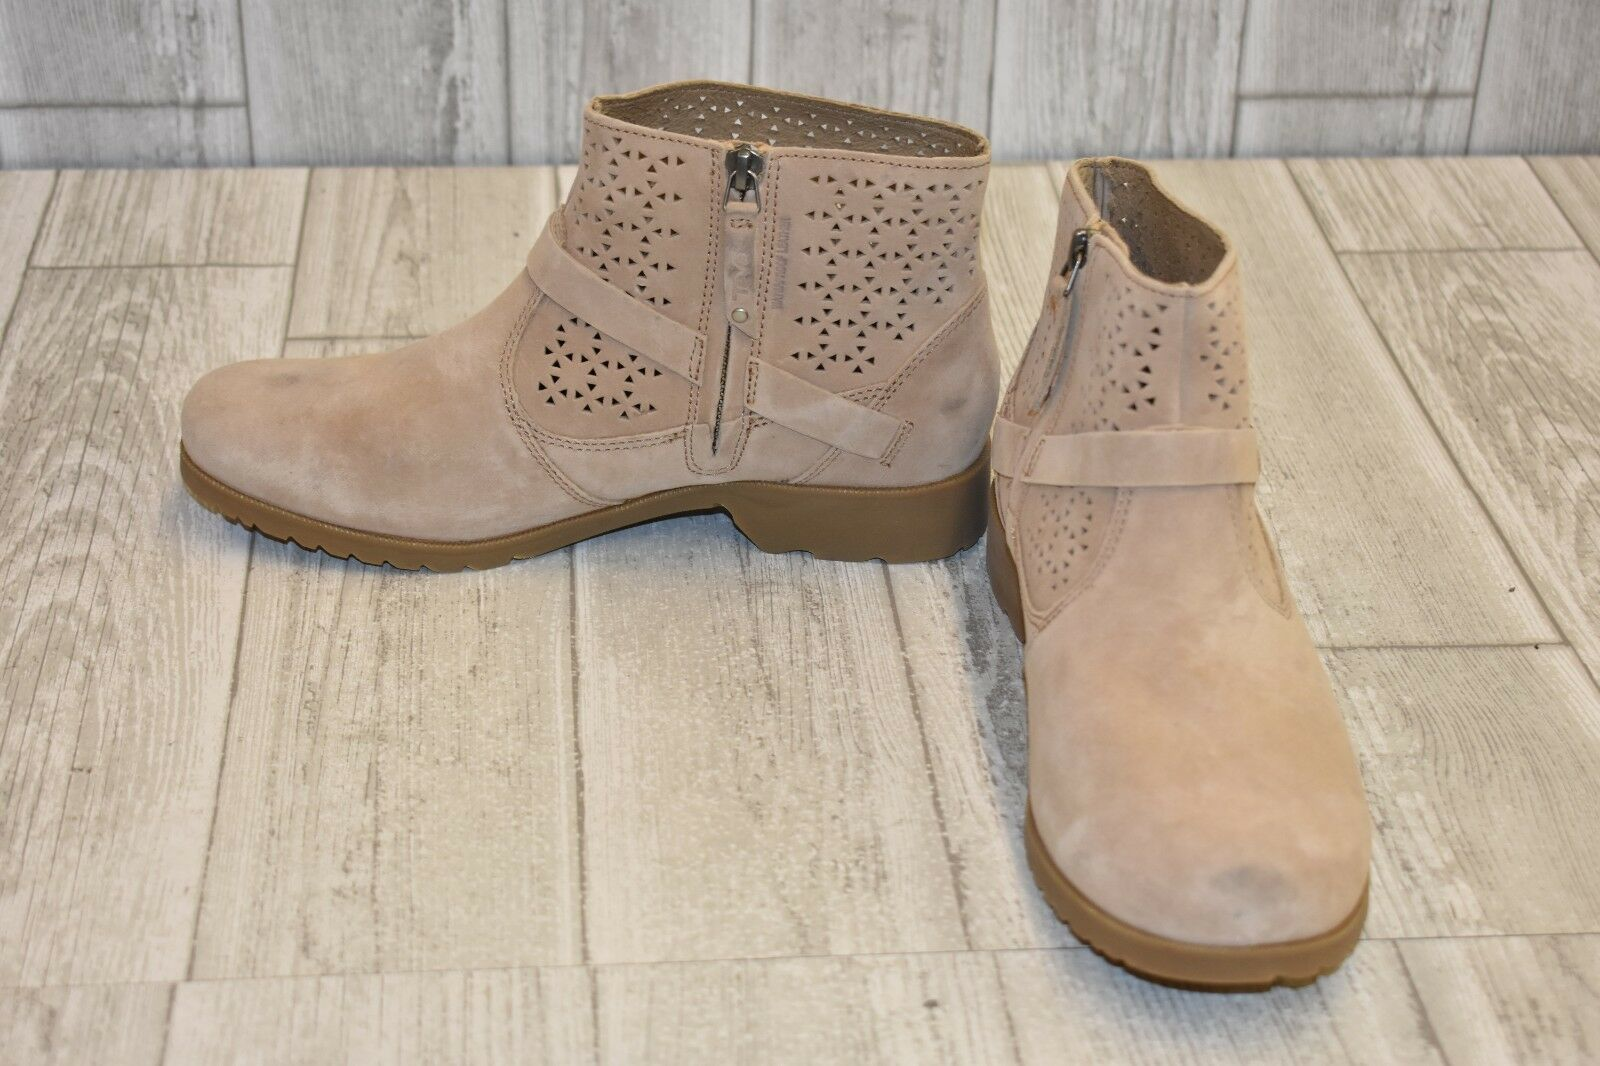 Teva Delavina Perforated Ankle Boot, Women's Size 8.5, Tan